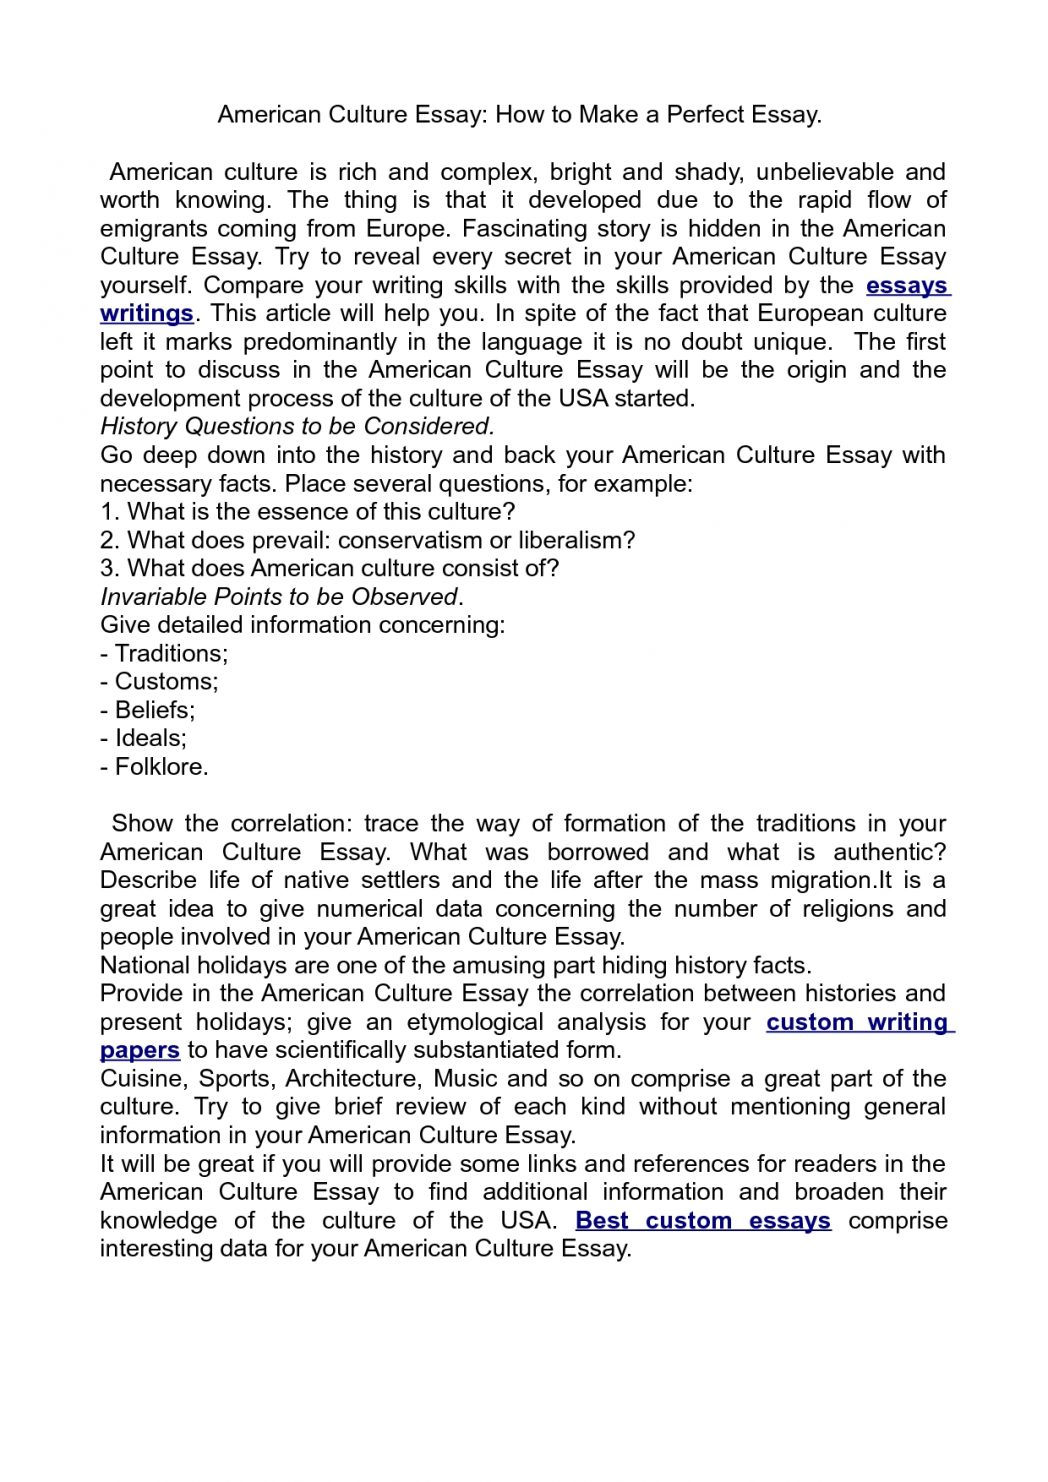 002 Pop Culture Essay Cultural Essays G On Working Together To Make Differences Ame Making 1048x1482 Top Controversial Topics Religion And Popular 2018 Full